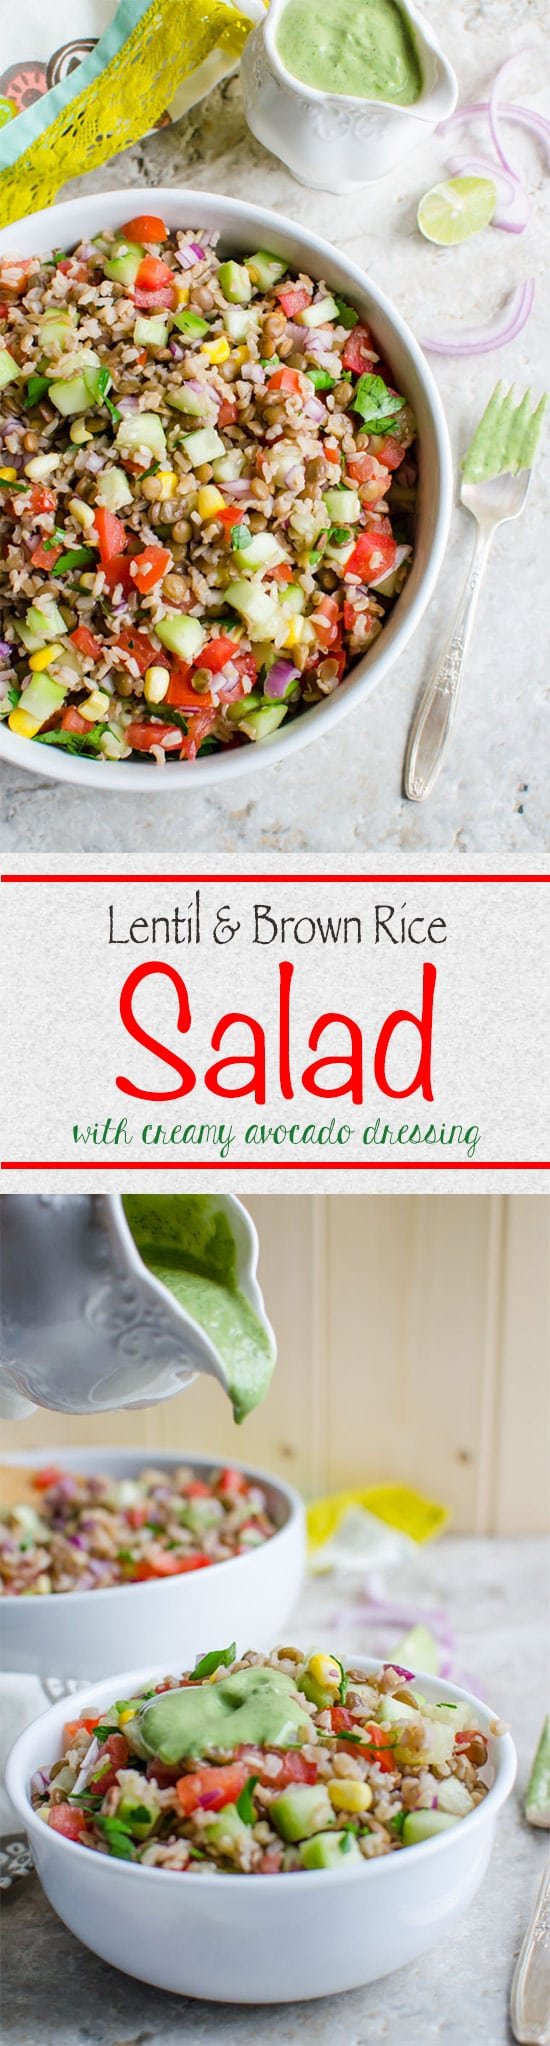 This healthy brown rice salad is really filling that will help you stay full for longer. You won't feel brown rice is boring any more.